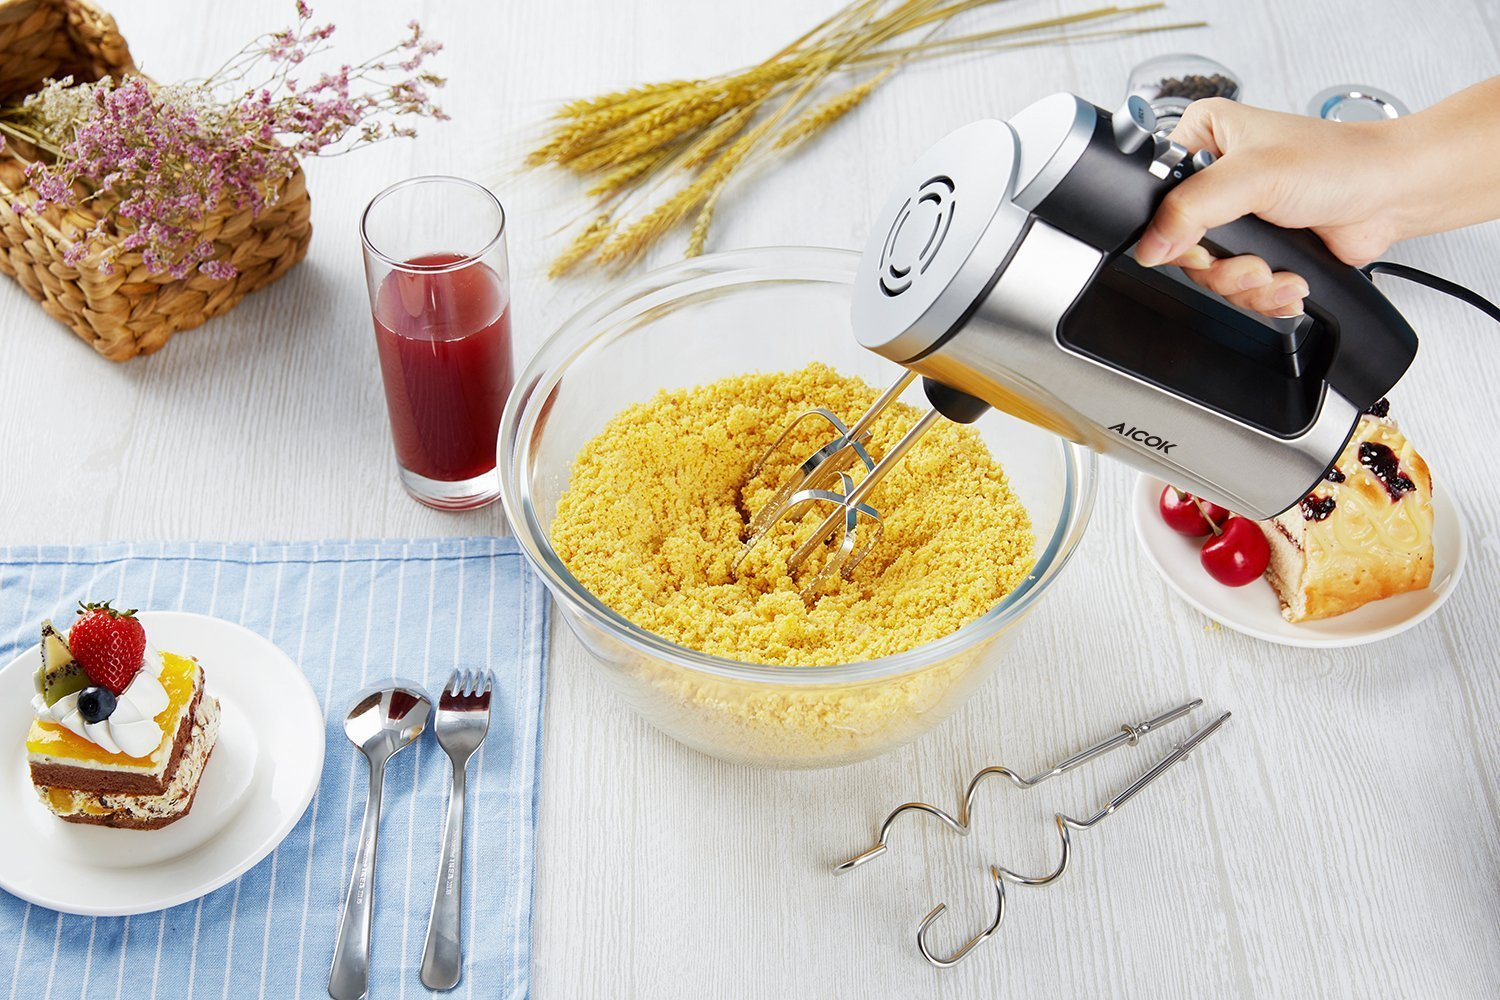 Aicok Hand Mixer 6 Speed Classic Stainless Steel Mixer Ultra Power Electric Mixer with Turbo and Easy Eject Button, Durable Handheld Mixer Includes Sturdy Beaters and Dough Hooks, Silver by AICOK (Image #5)